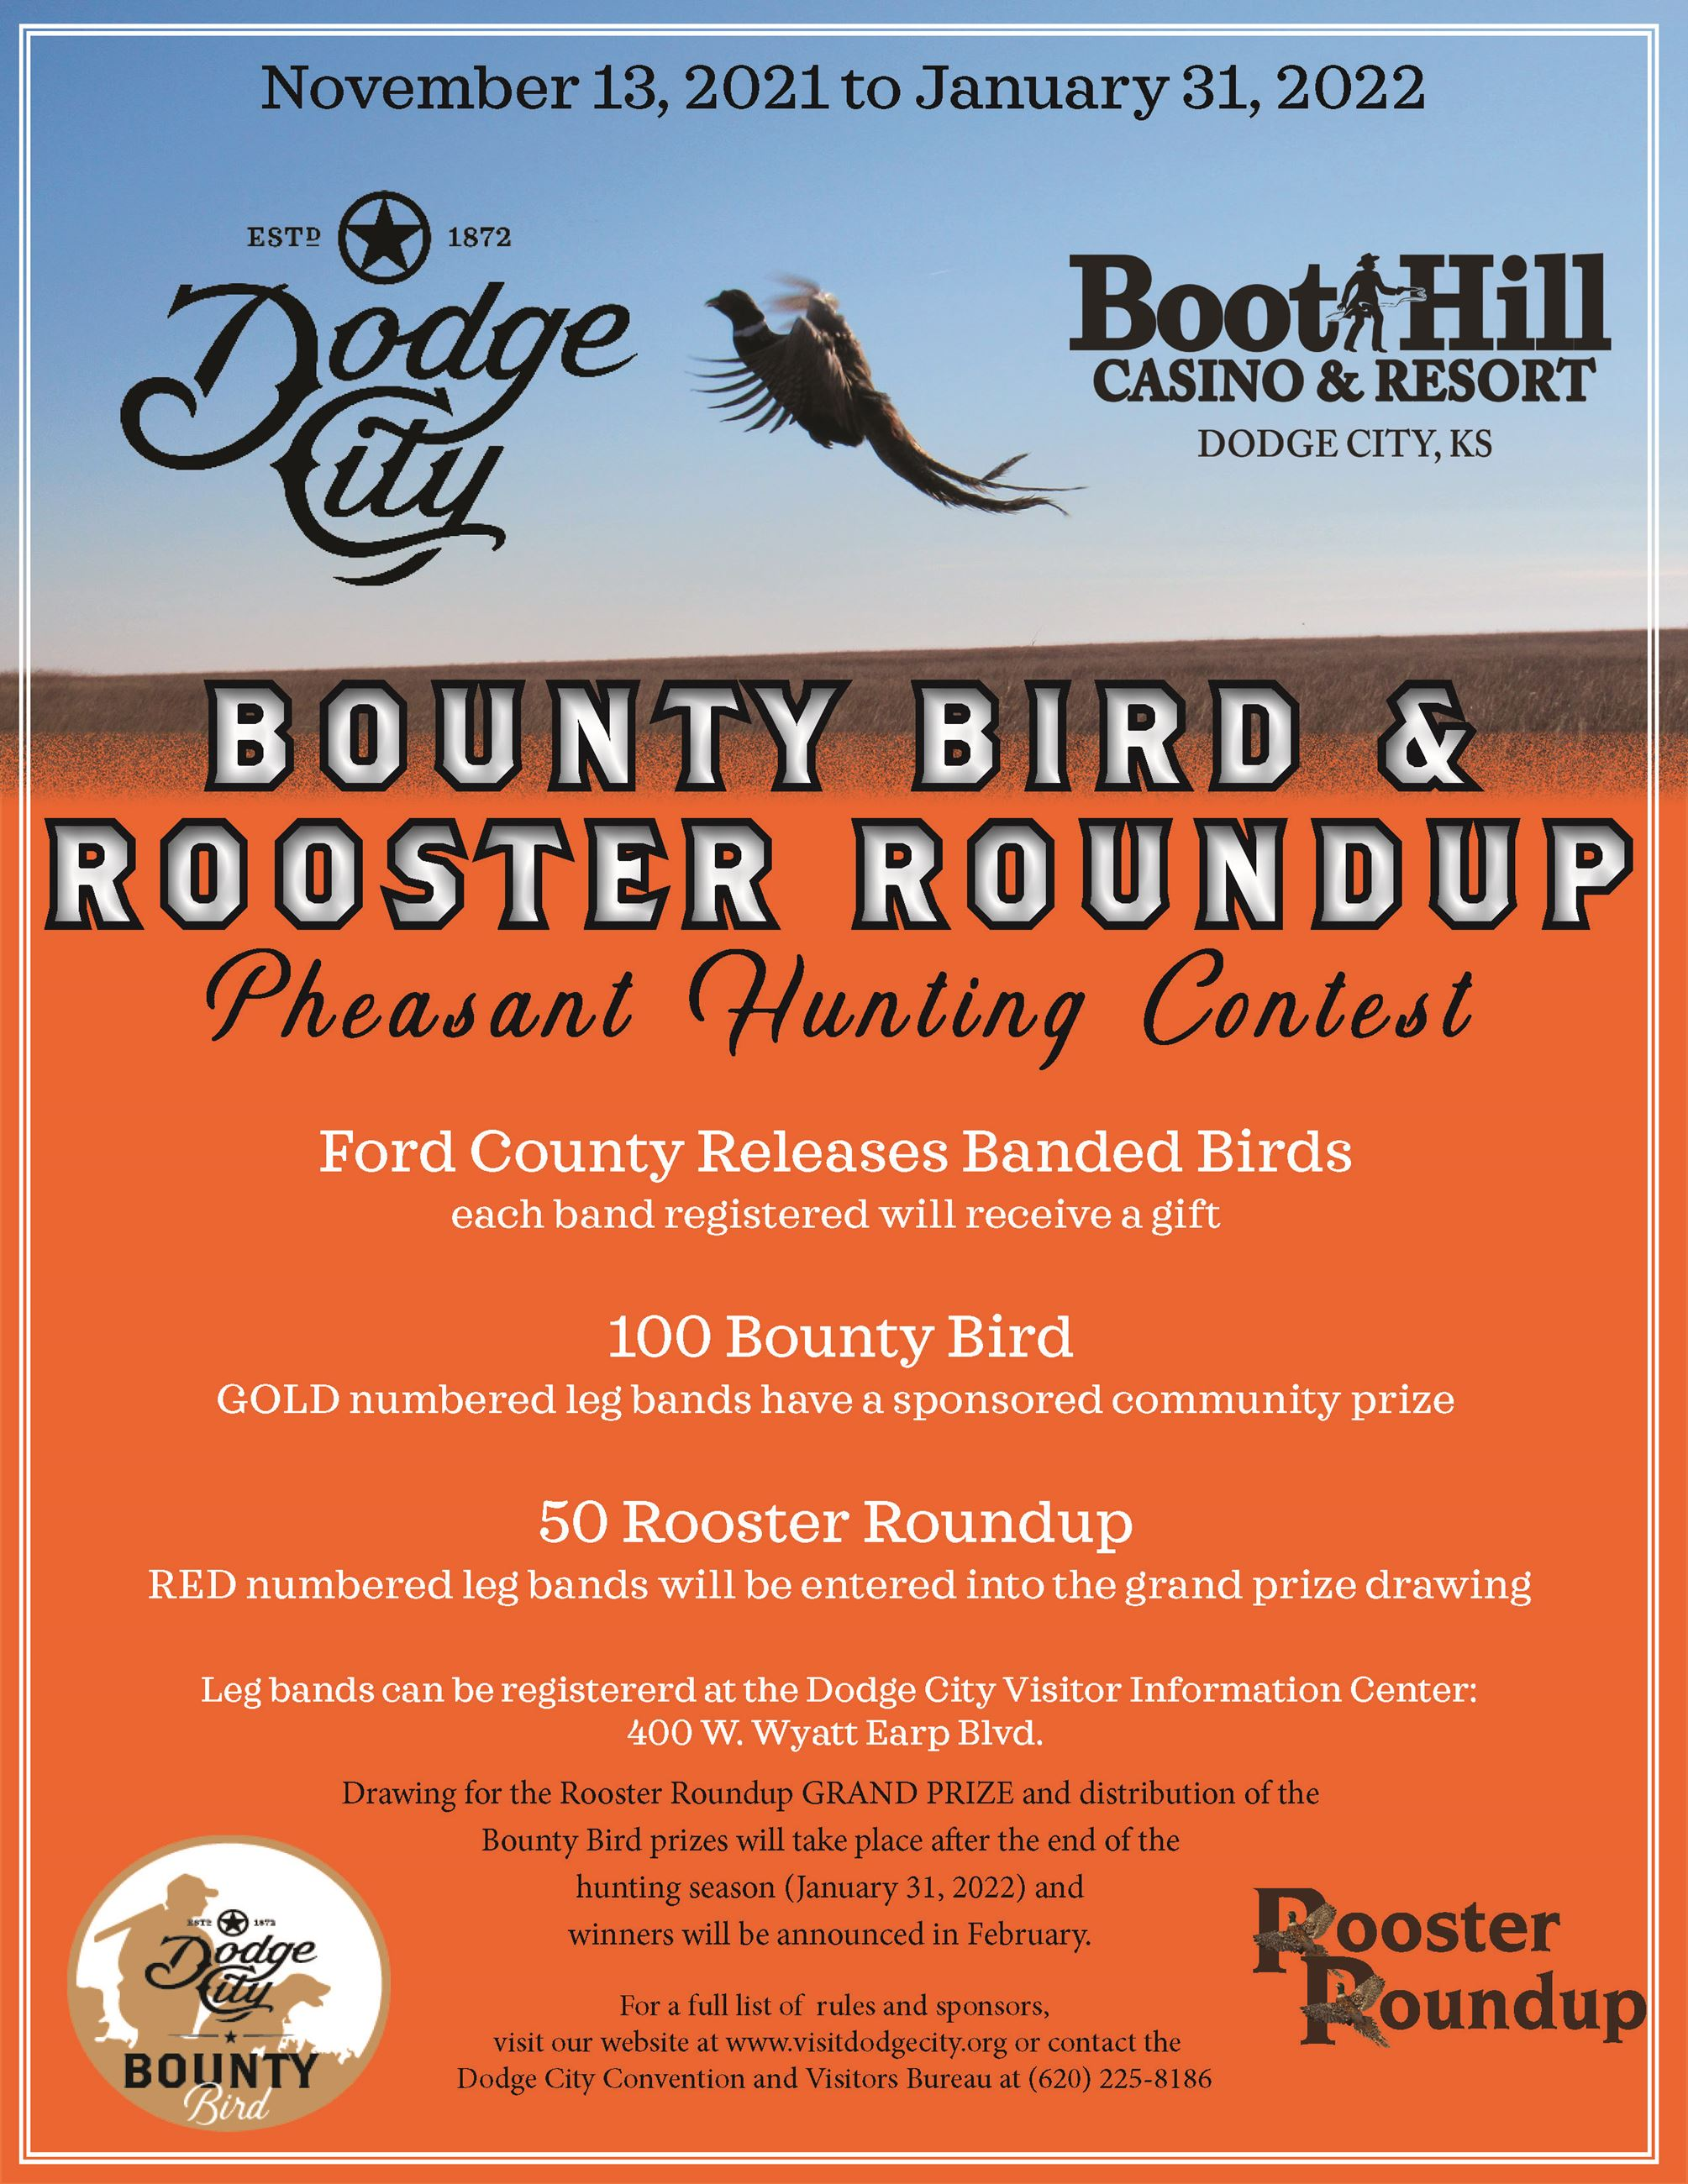 Ford County Pheasant Hunting Contest - Bounty Bird 2020-2021